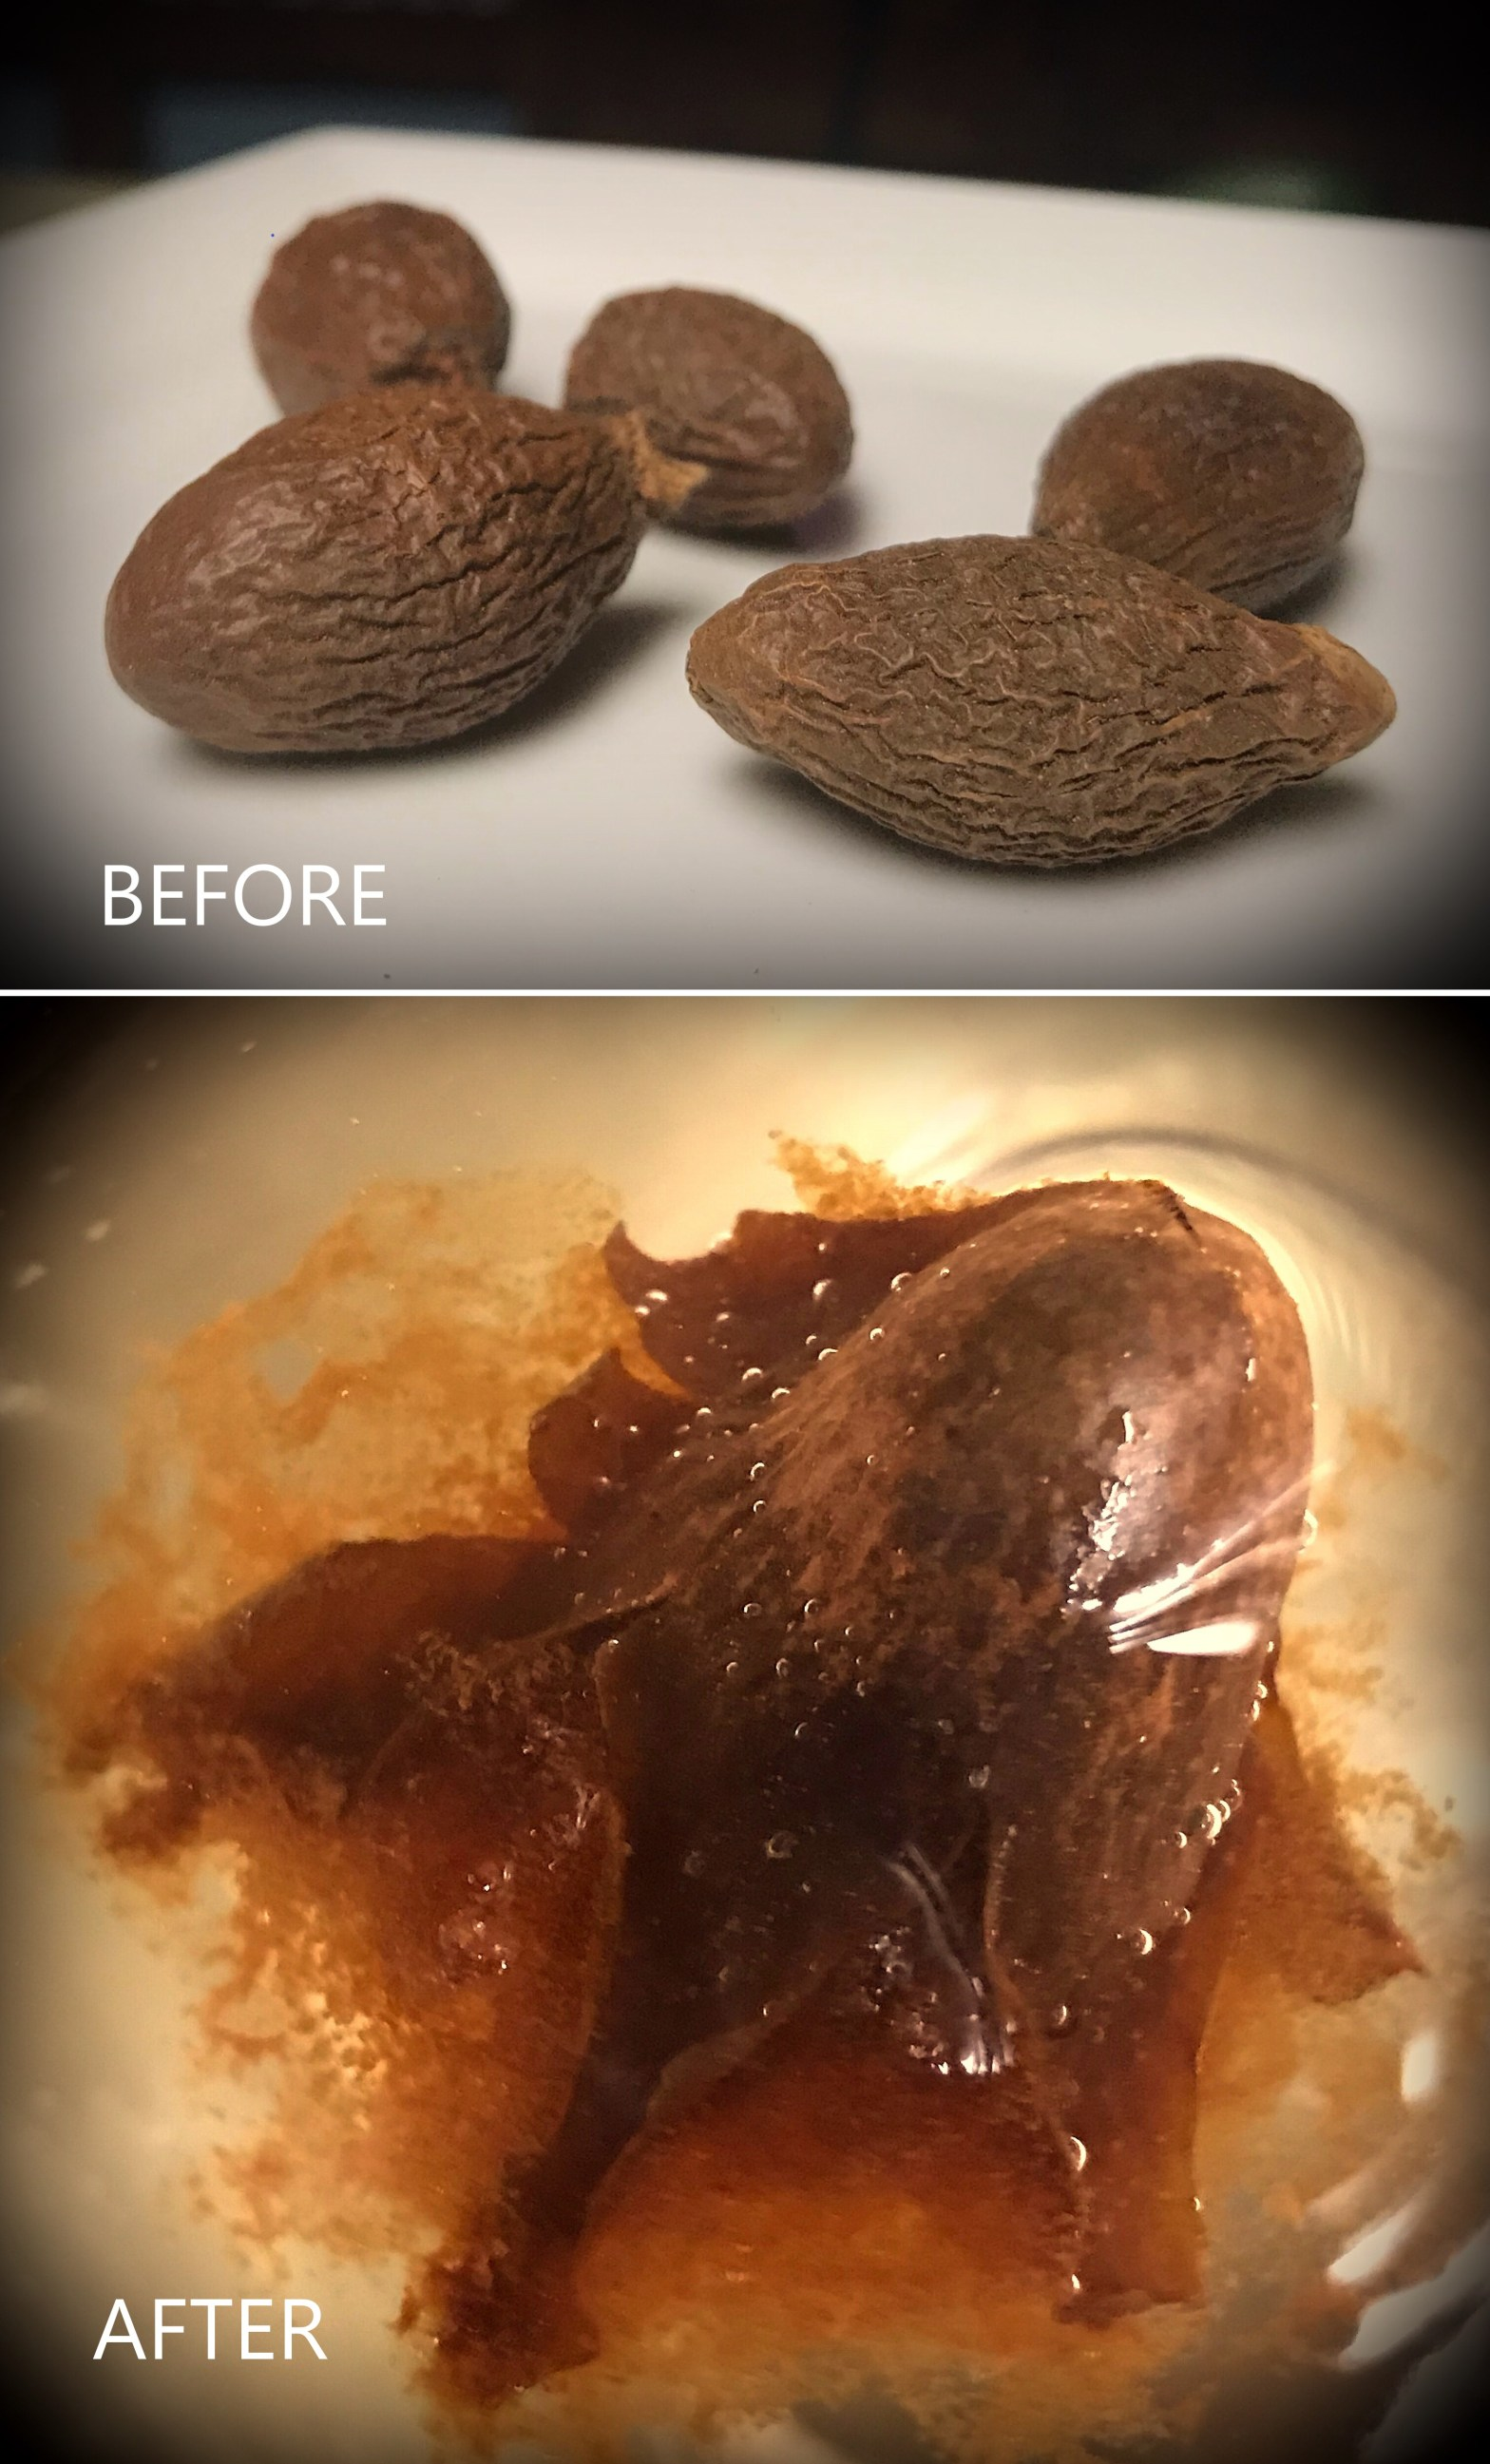 Pang Da Hing aka Sterculia Seed Chinese herb. Image of hard seed before and expanded soft mesh after steeping in hot water